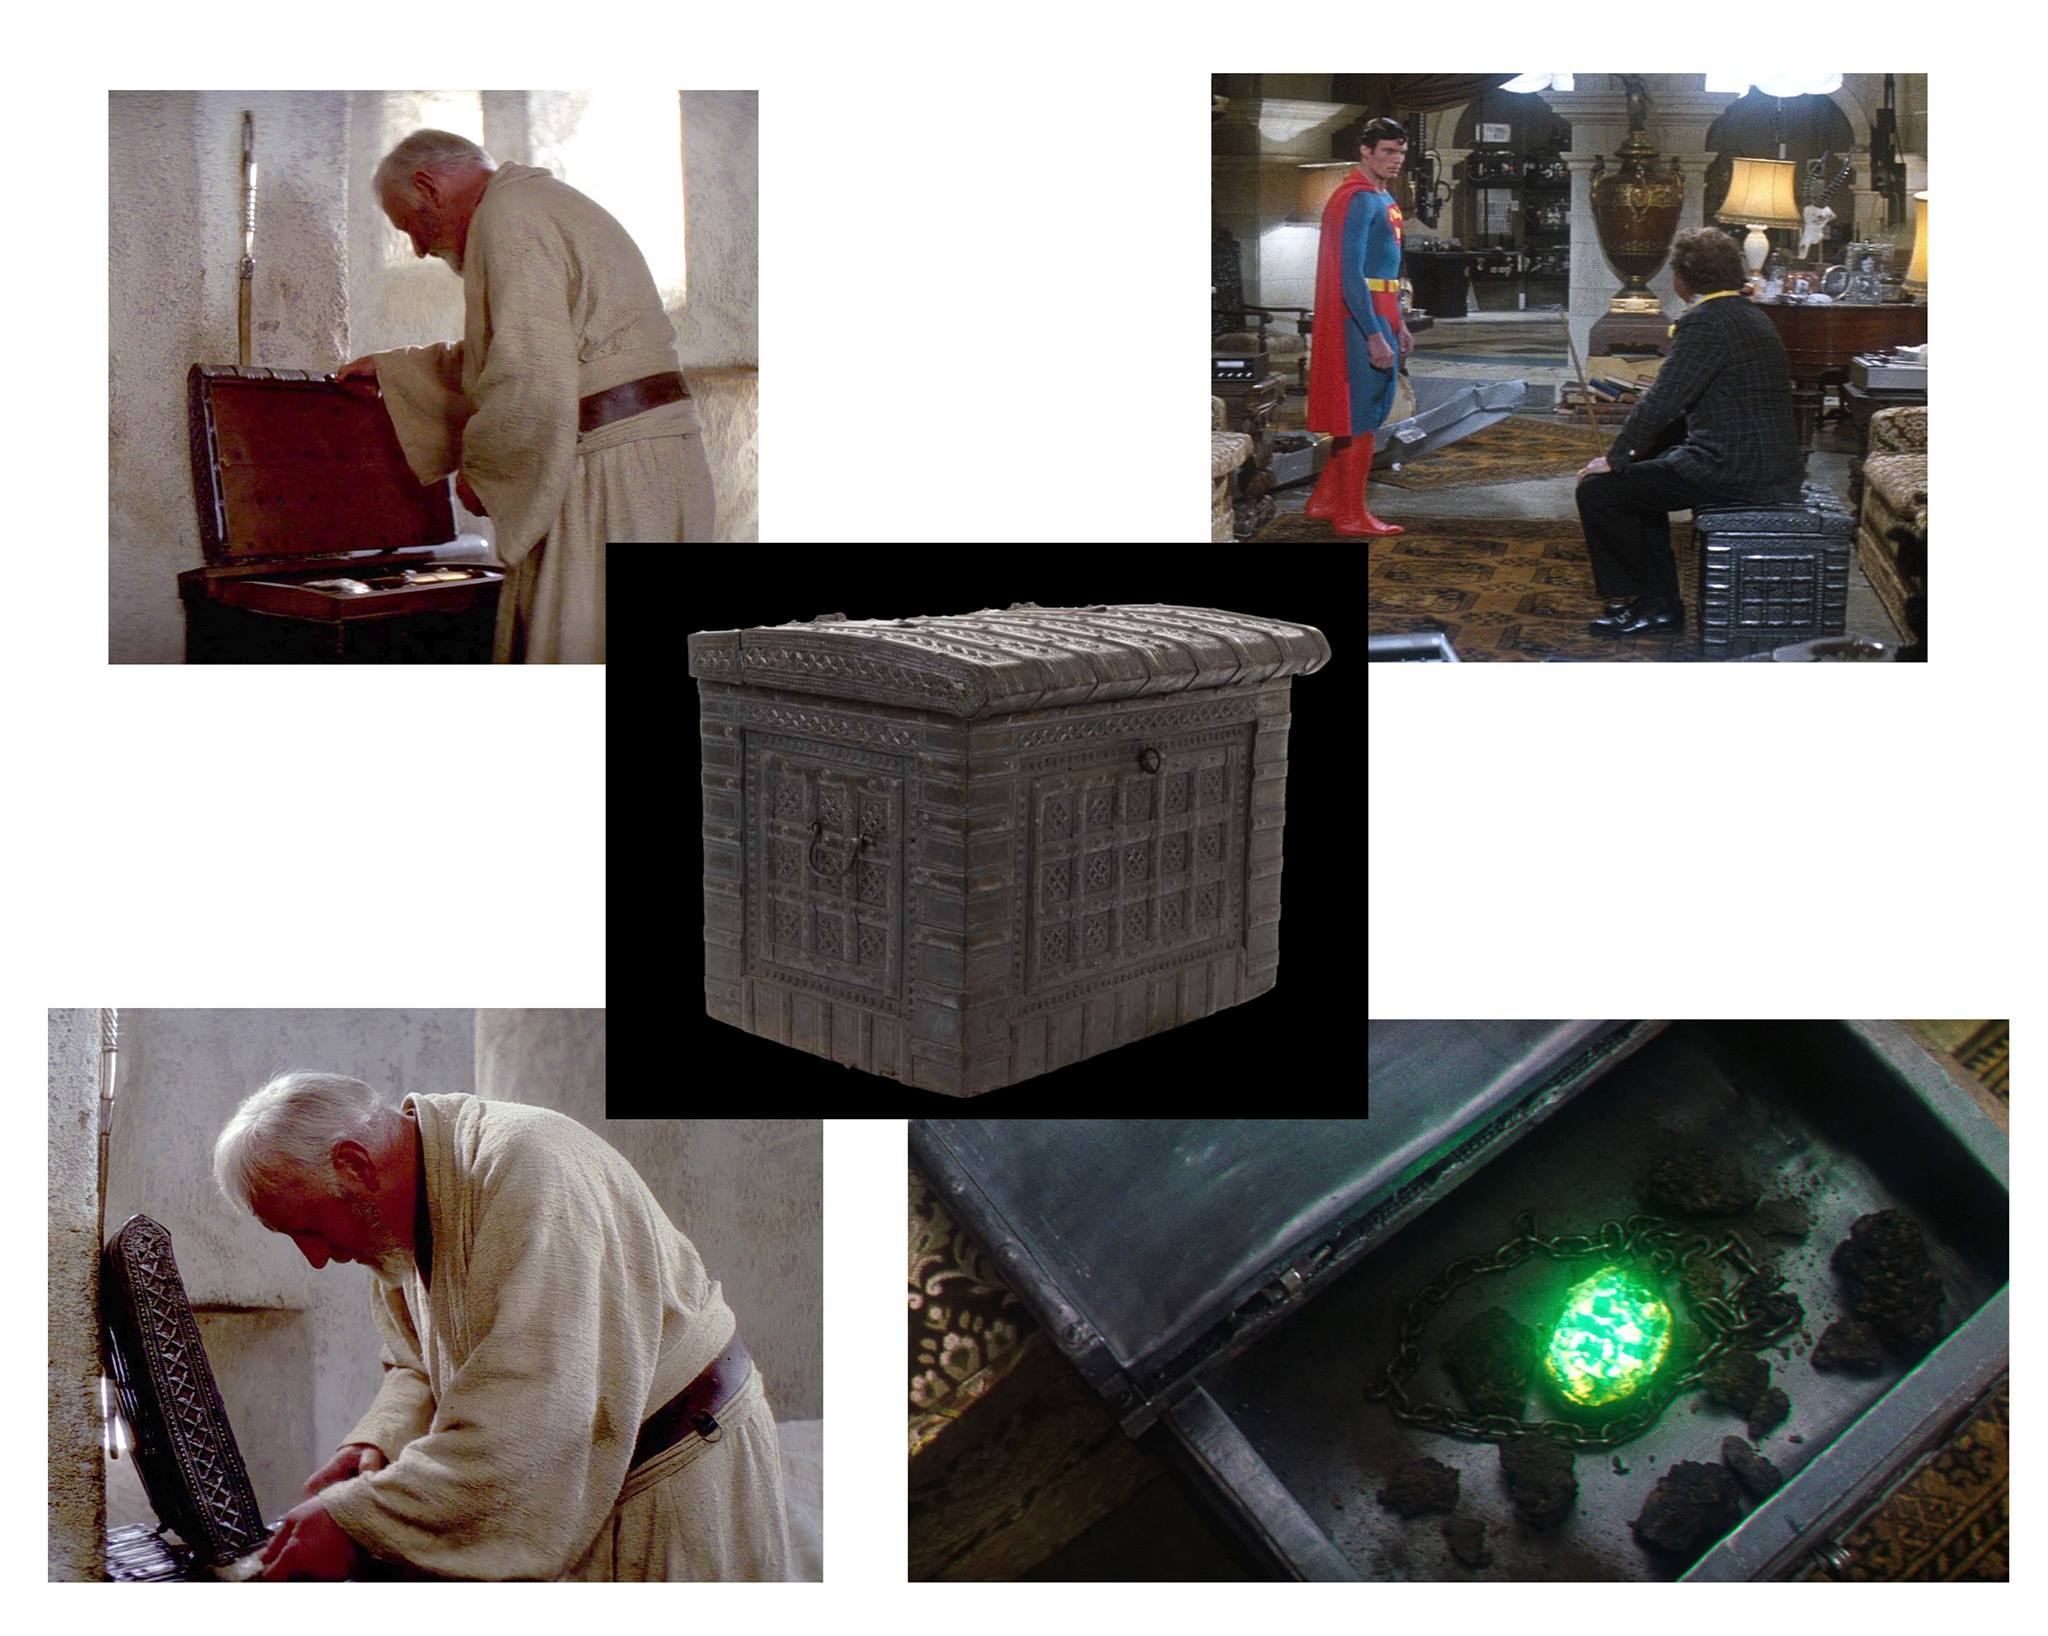 The same chest was used in Obi Wan's house and Lex Luthor's lair. Obi Wan and Lex Luthor box prop.